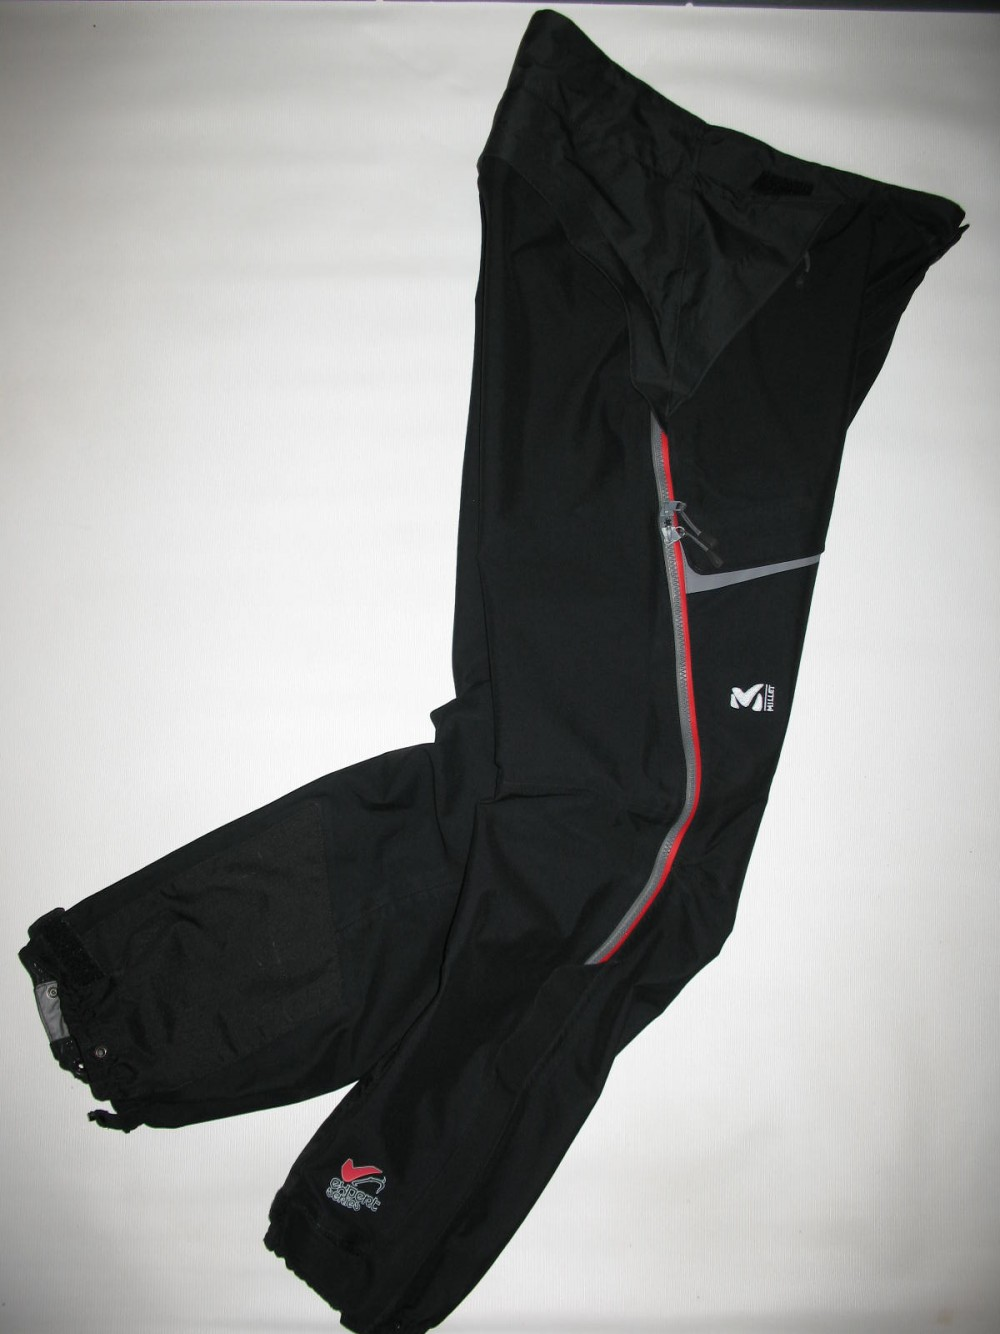 Штаны MILLET grand mixte pants (размер L) - 1